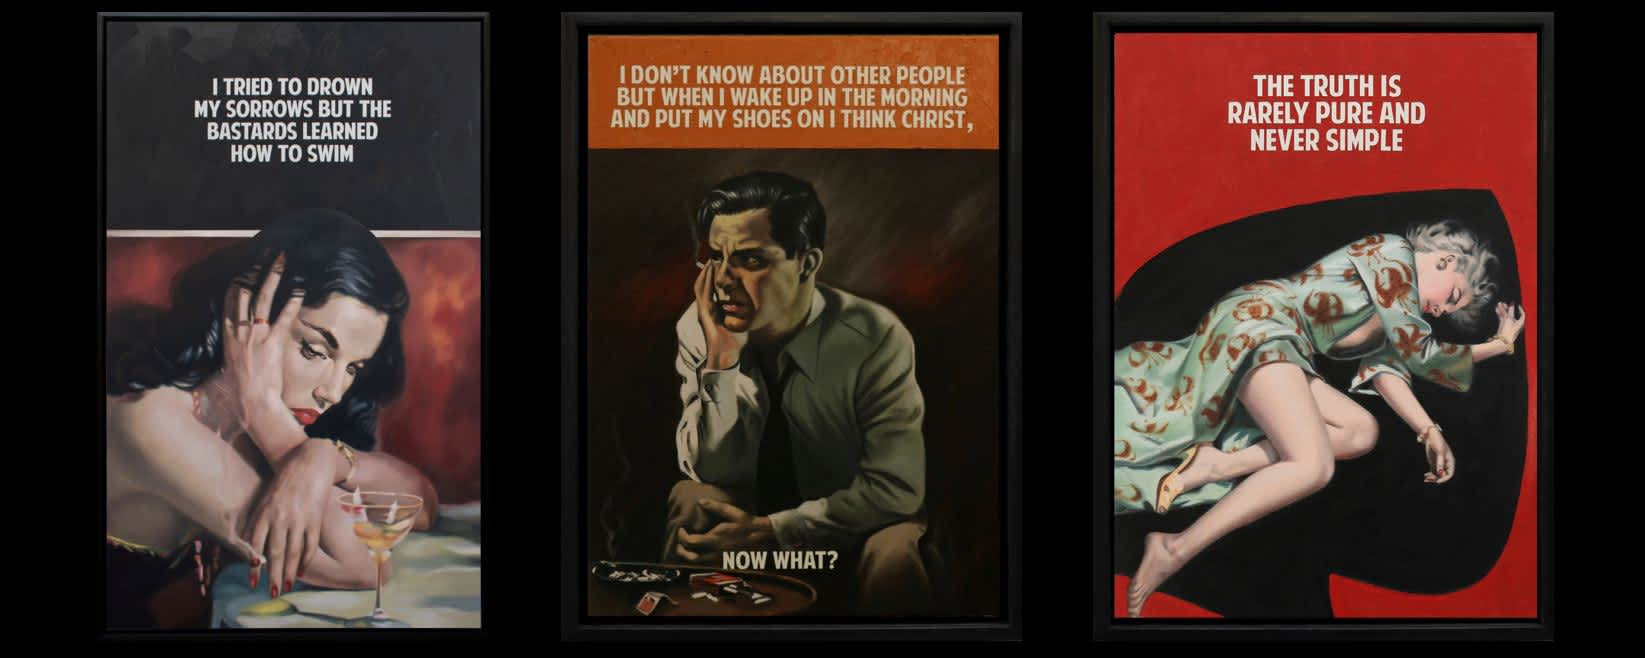 The Connor Brother's 'Pulp Fiction' series comes to an end